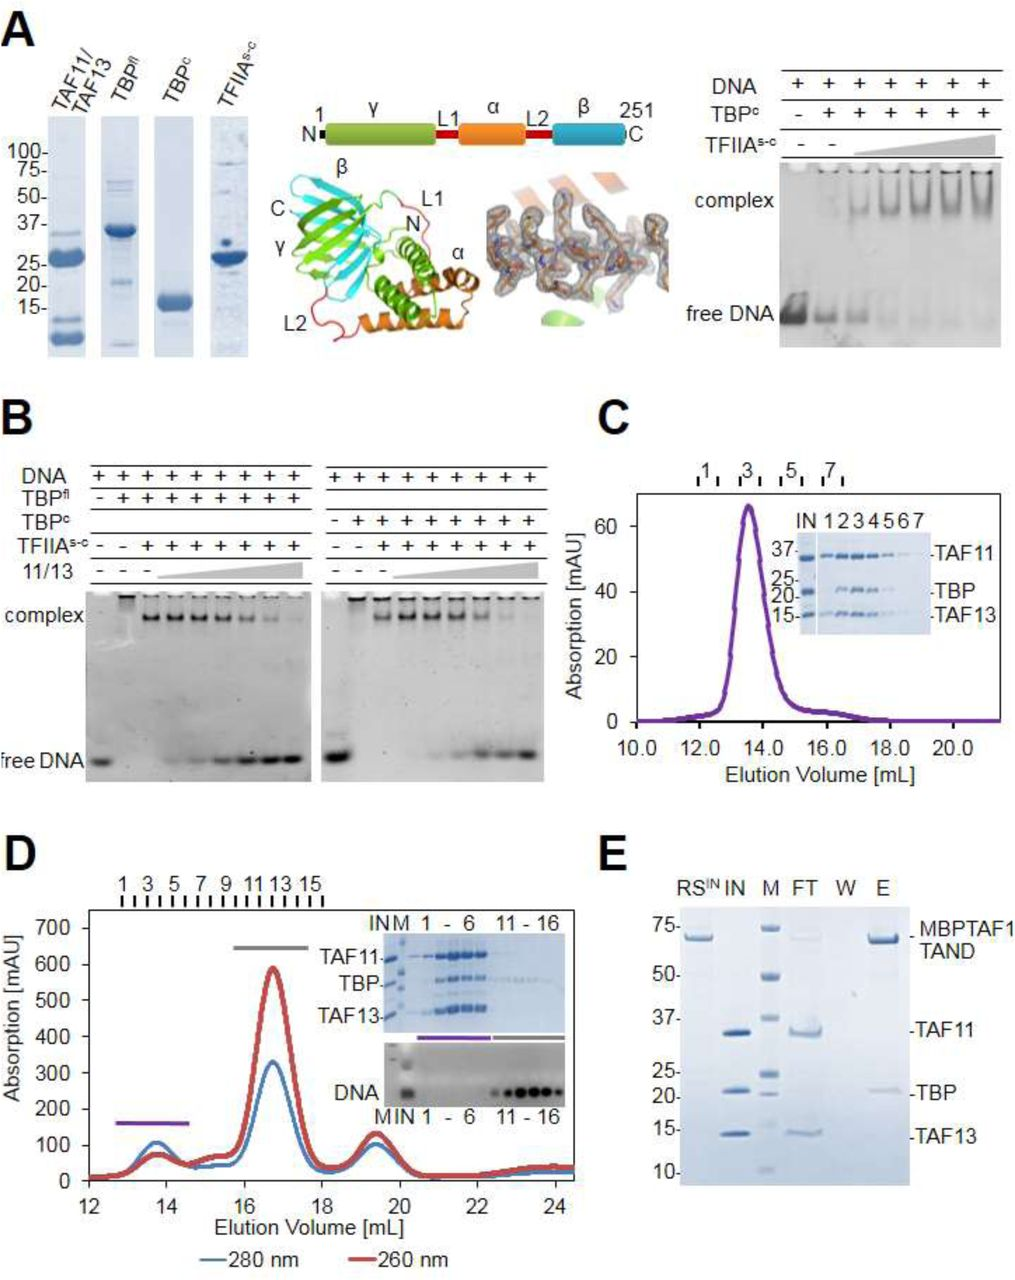 Architecture of TAF11/TAF13/TBP complex suggests novel regulatory